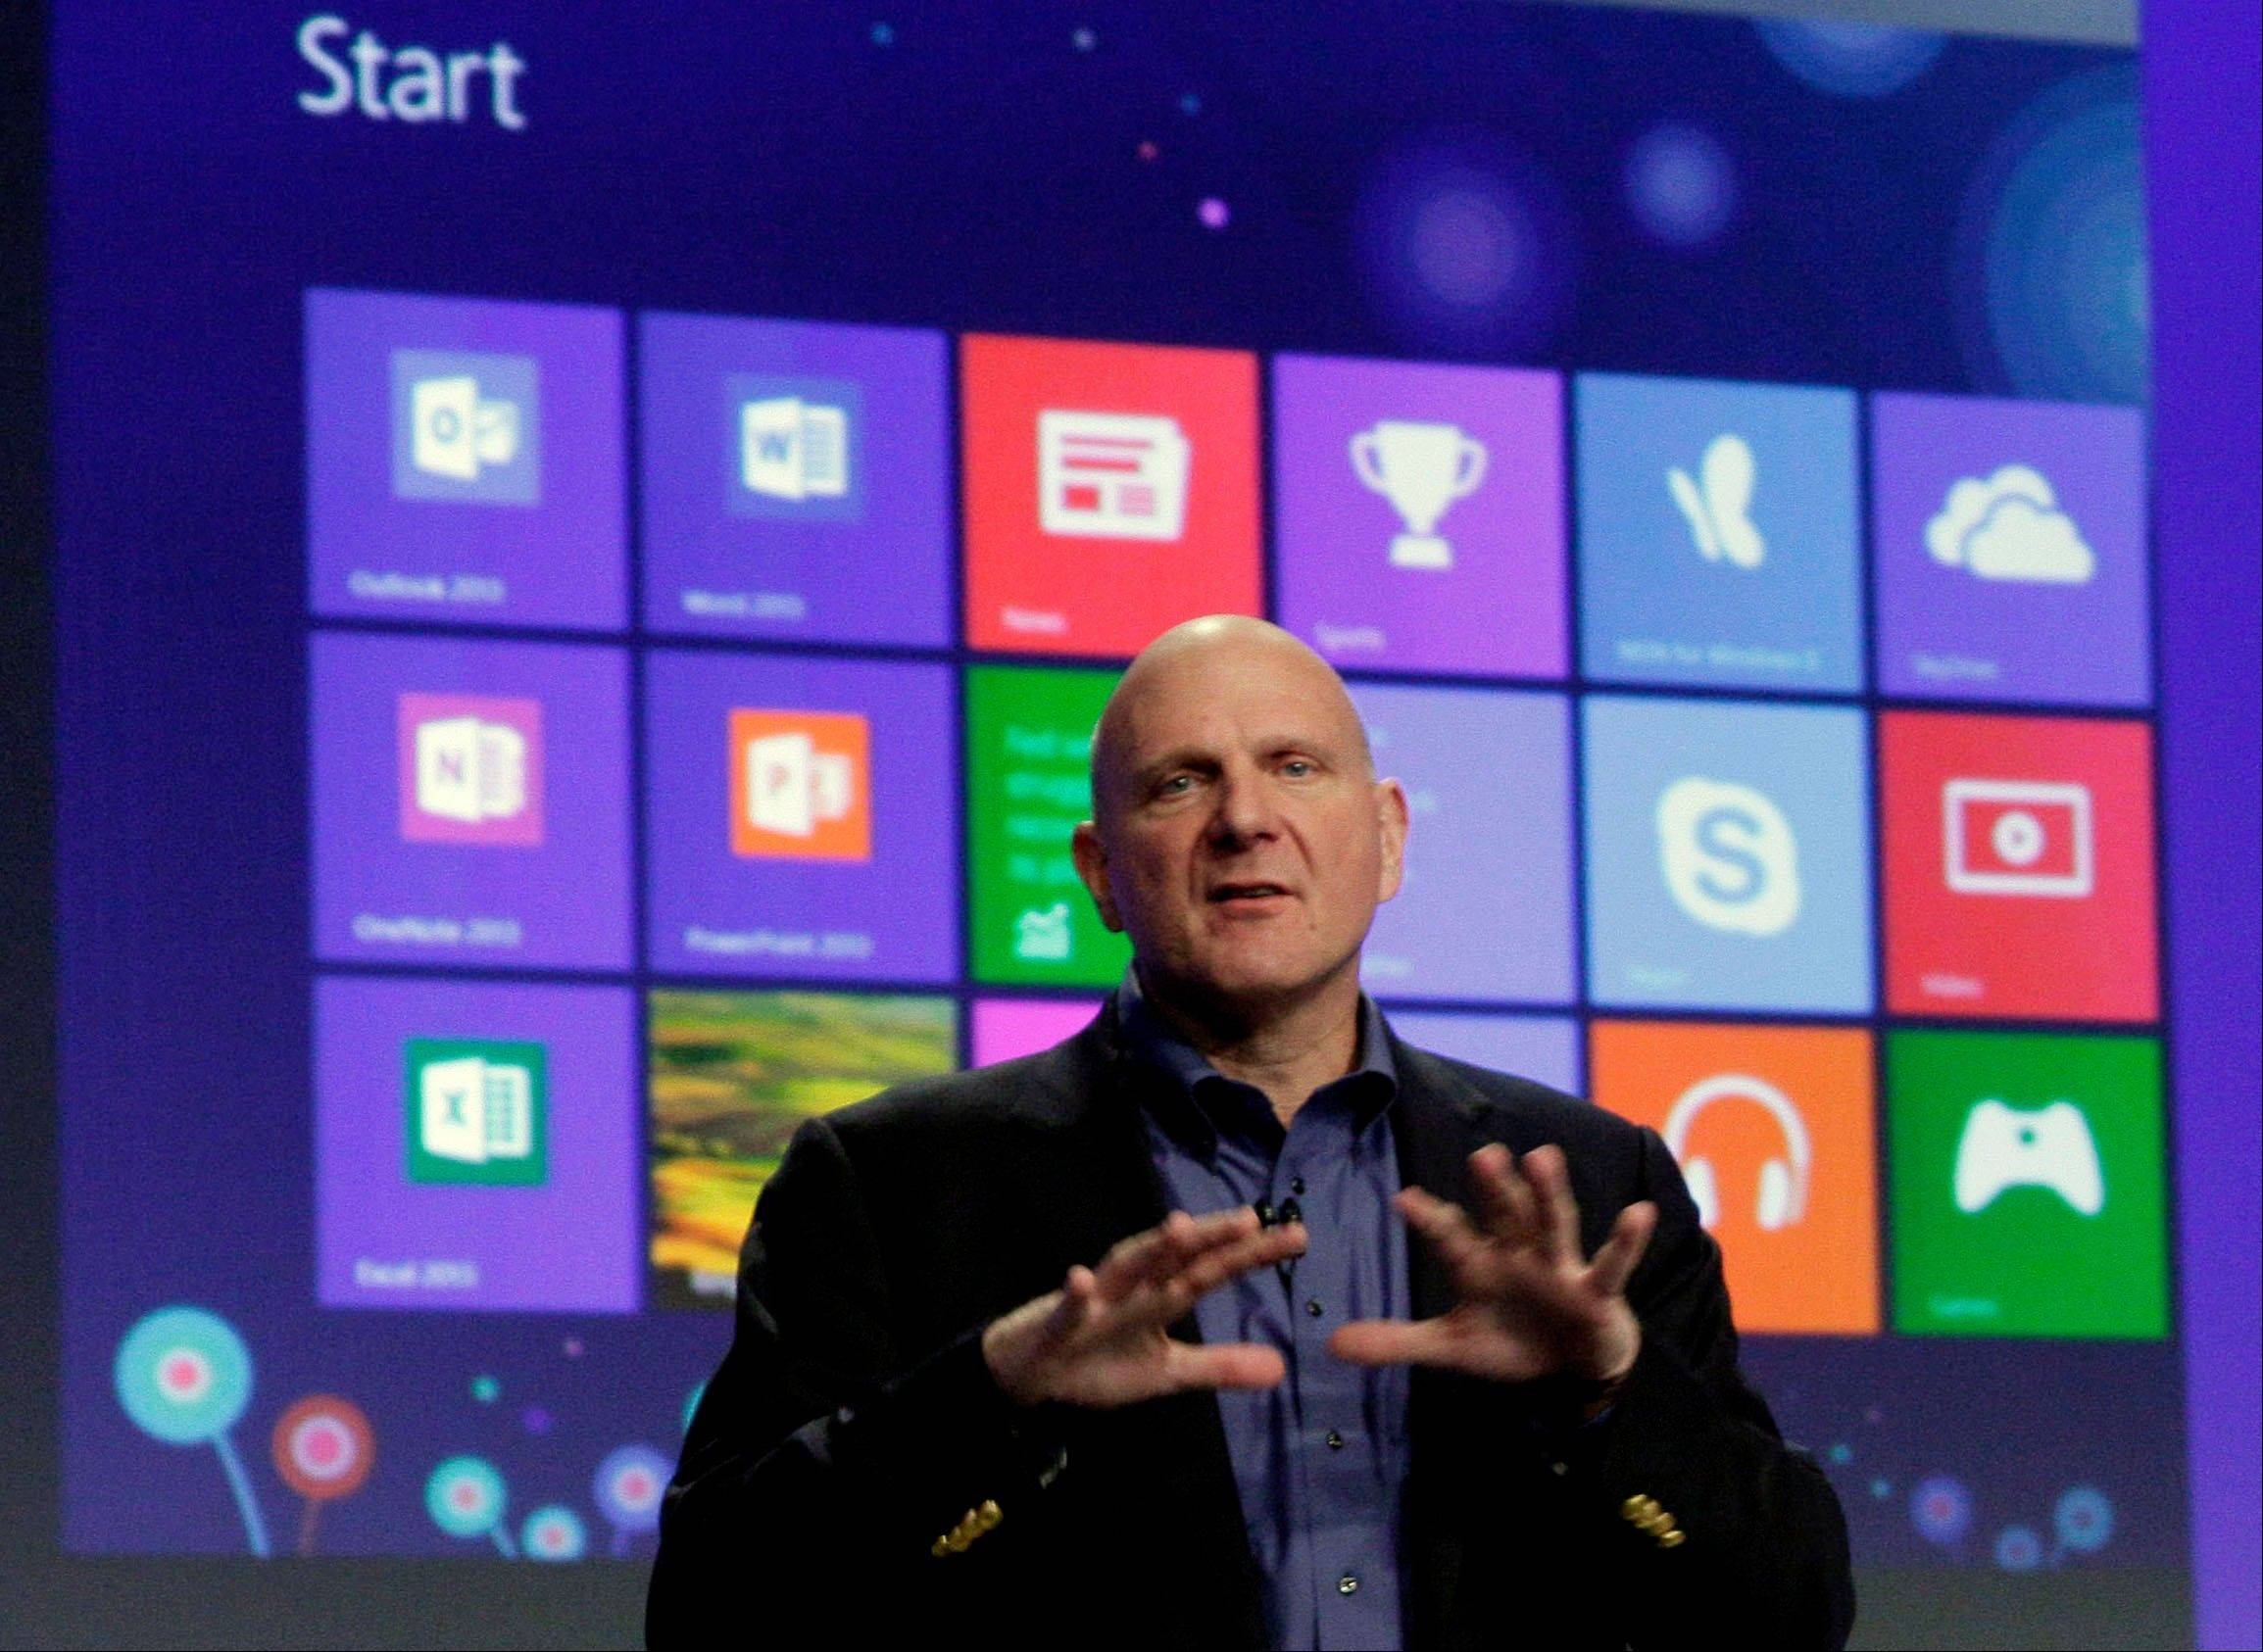 Microsoft CEO Steve Ballmer gives his presentation at the launch of Microsoft Windows 8, in New York, Thursday, Oct. 25, 2012. Windows 8 is the most dramatic overhaul of the personal computer market's dominant operating system in 17 years.